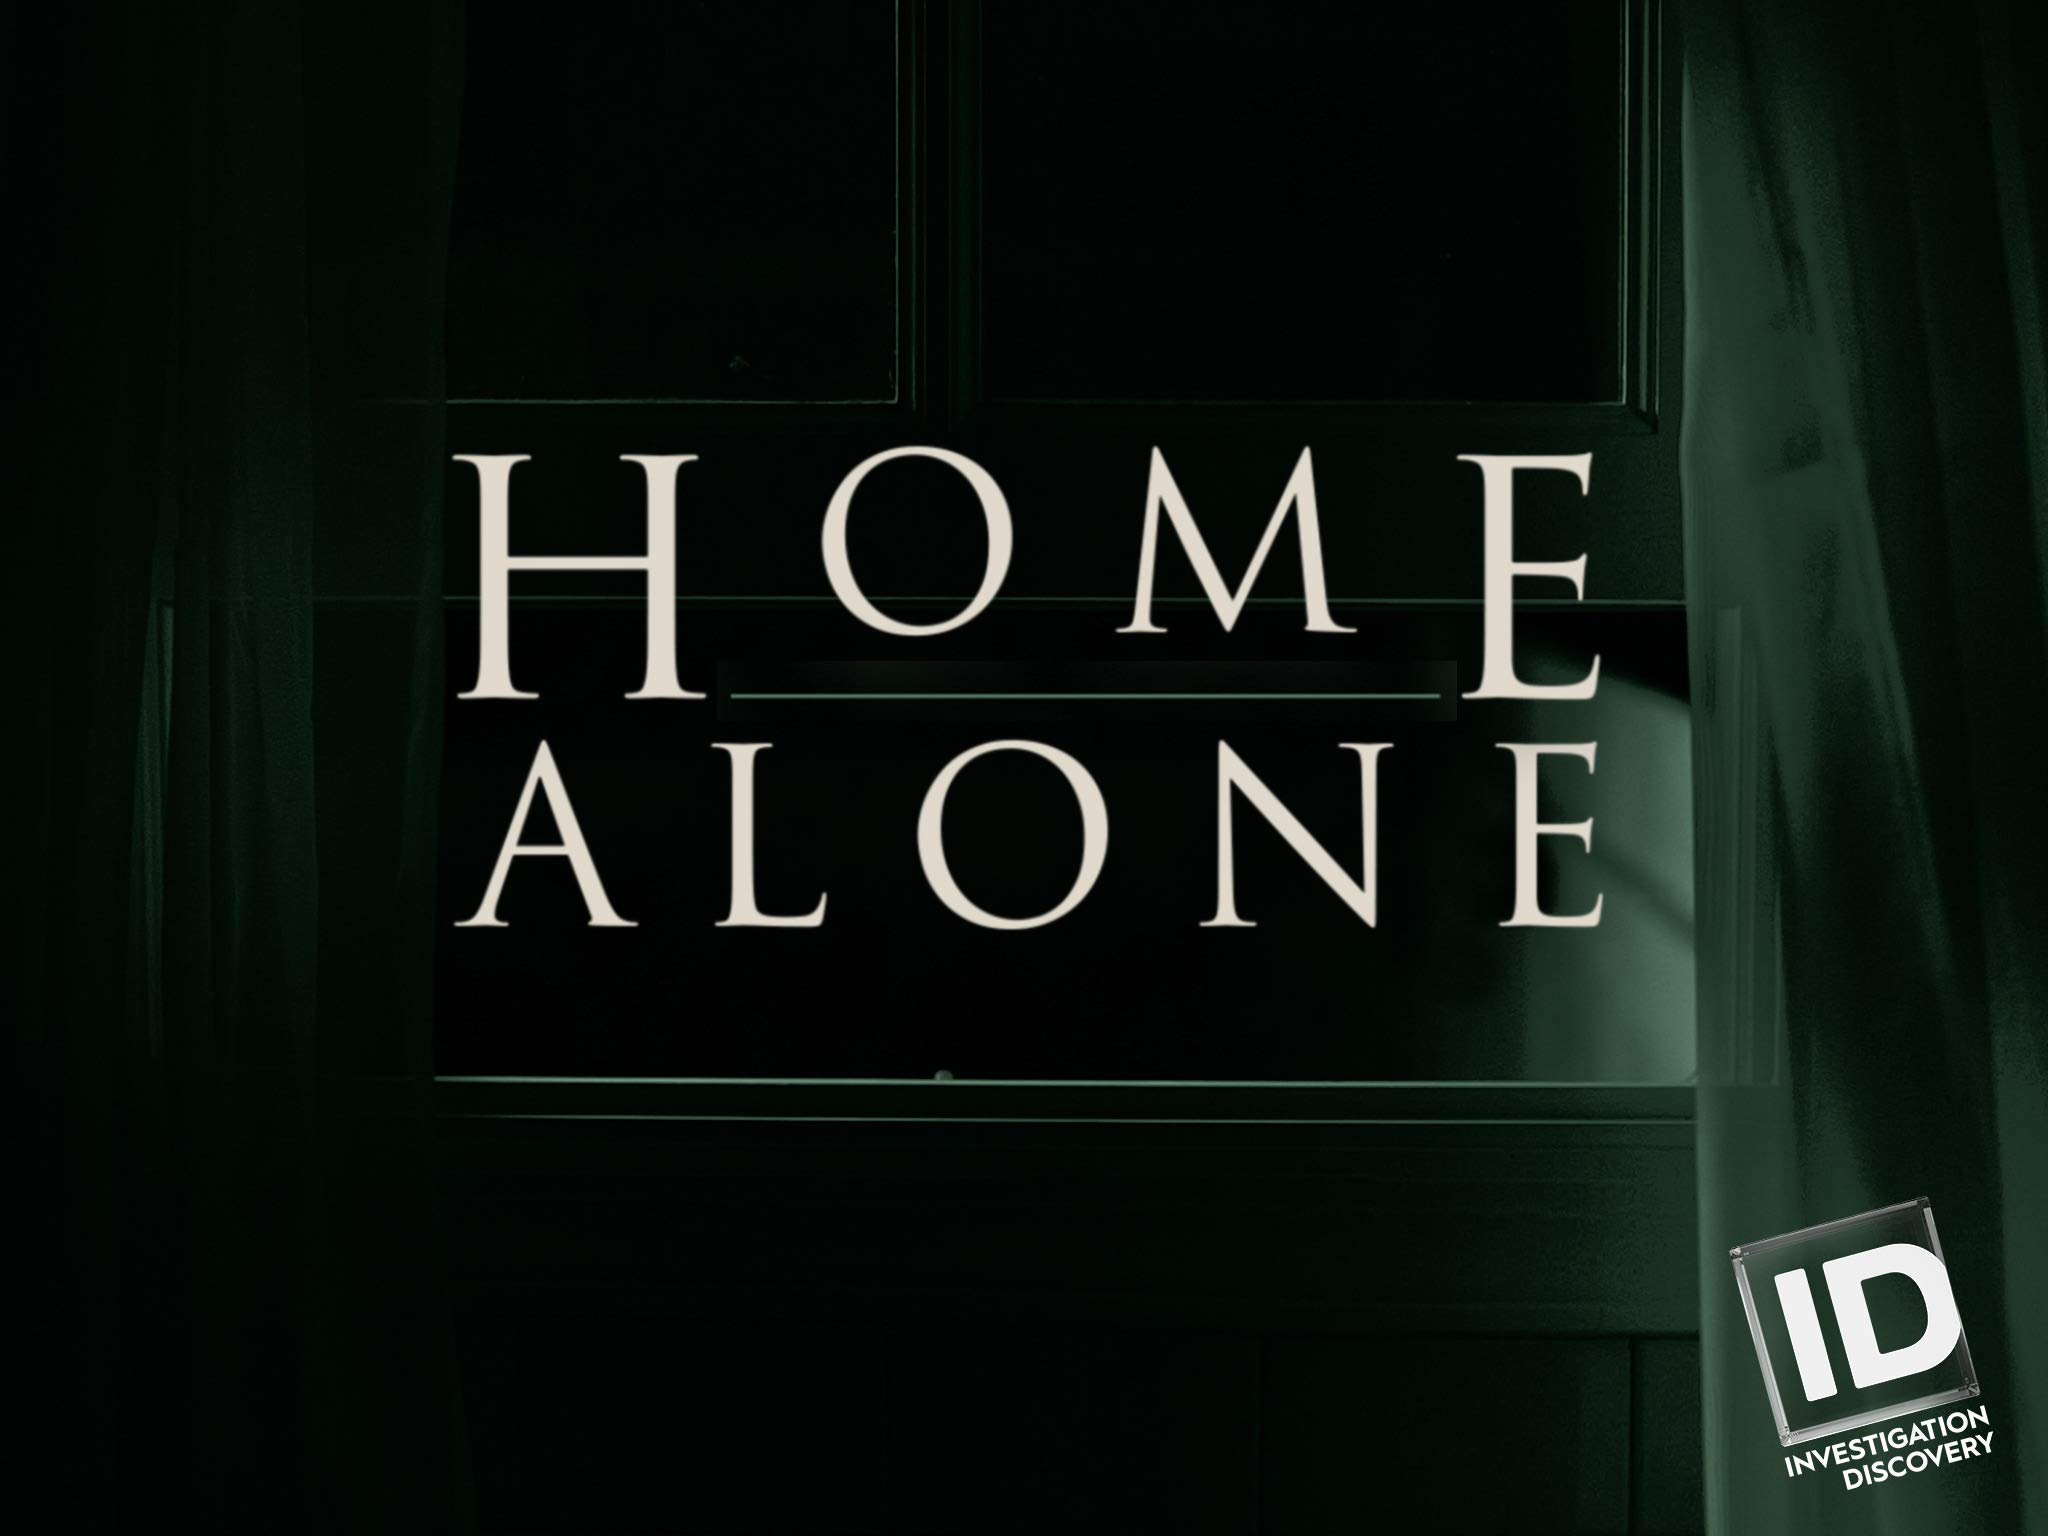 Home Alone Investigation Discovery - 2048x1536 - Download ...